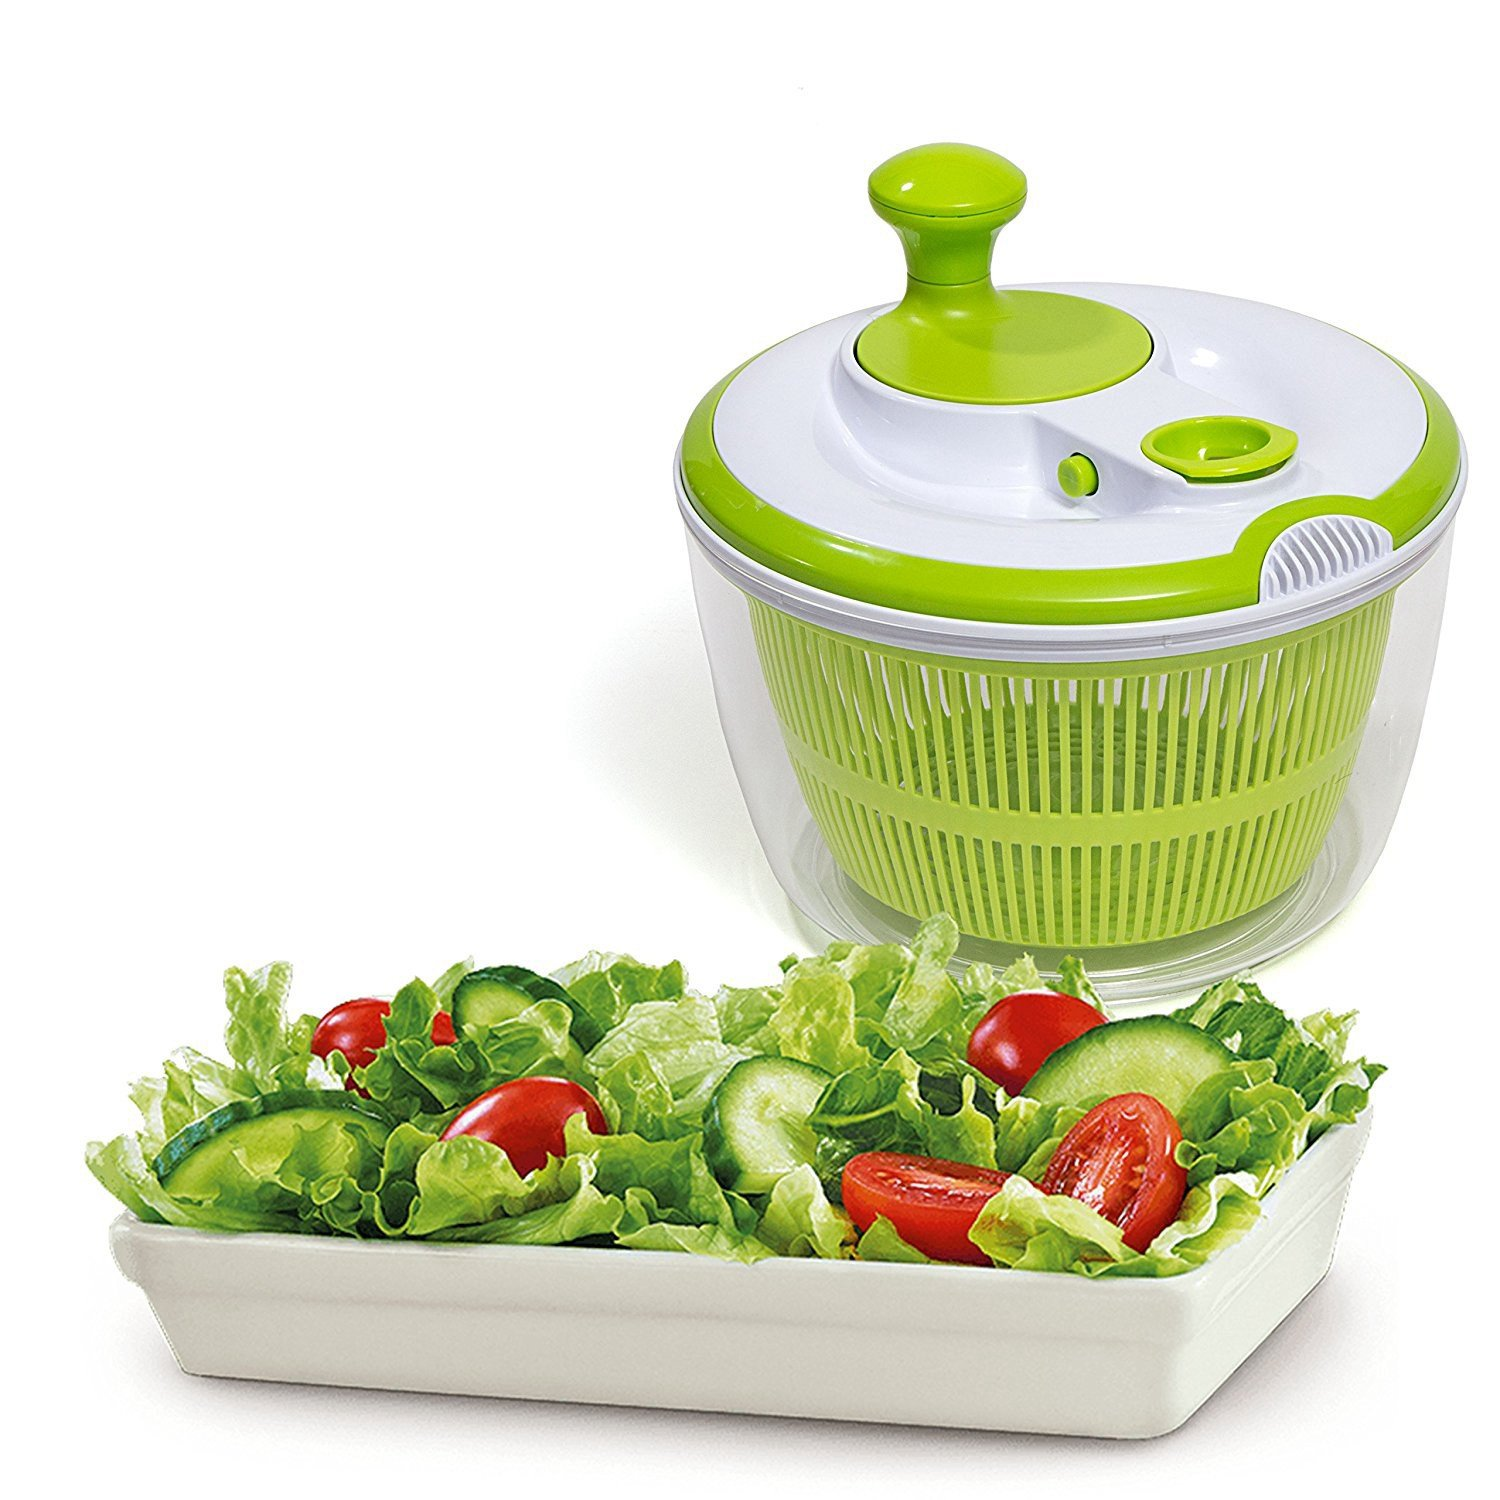 Haolide Multifunctional Durable BPA Free Food Safe Material Salad Spinner,360-Degree Rotating Household High-Speed Centrifuge Vegetables Quick Filter Baskets Lettuce Dryer